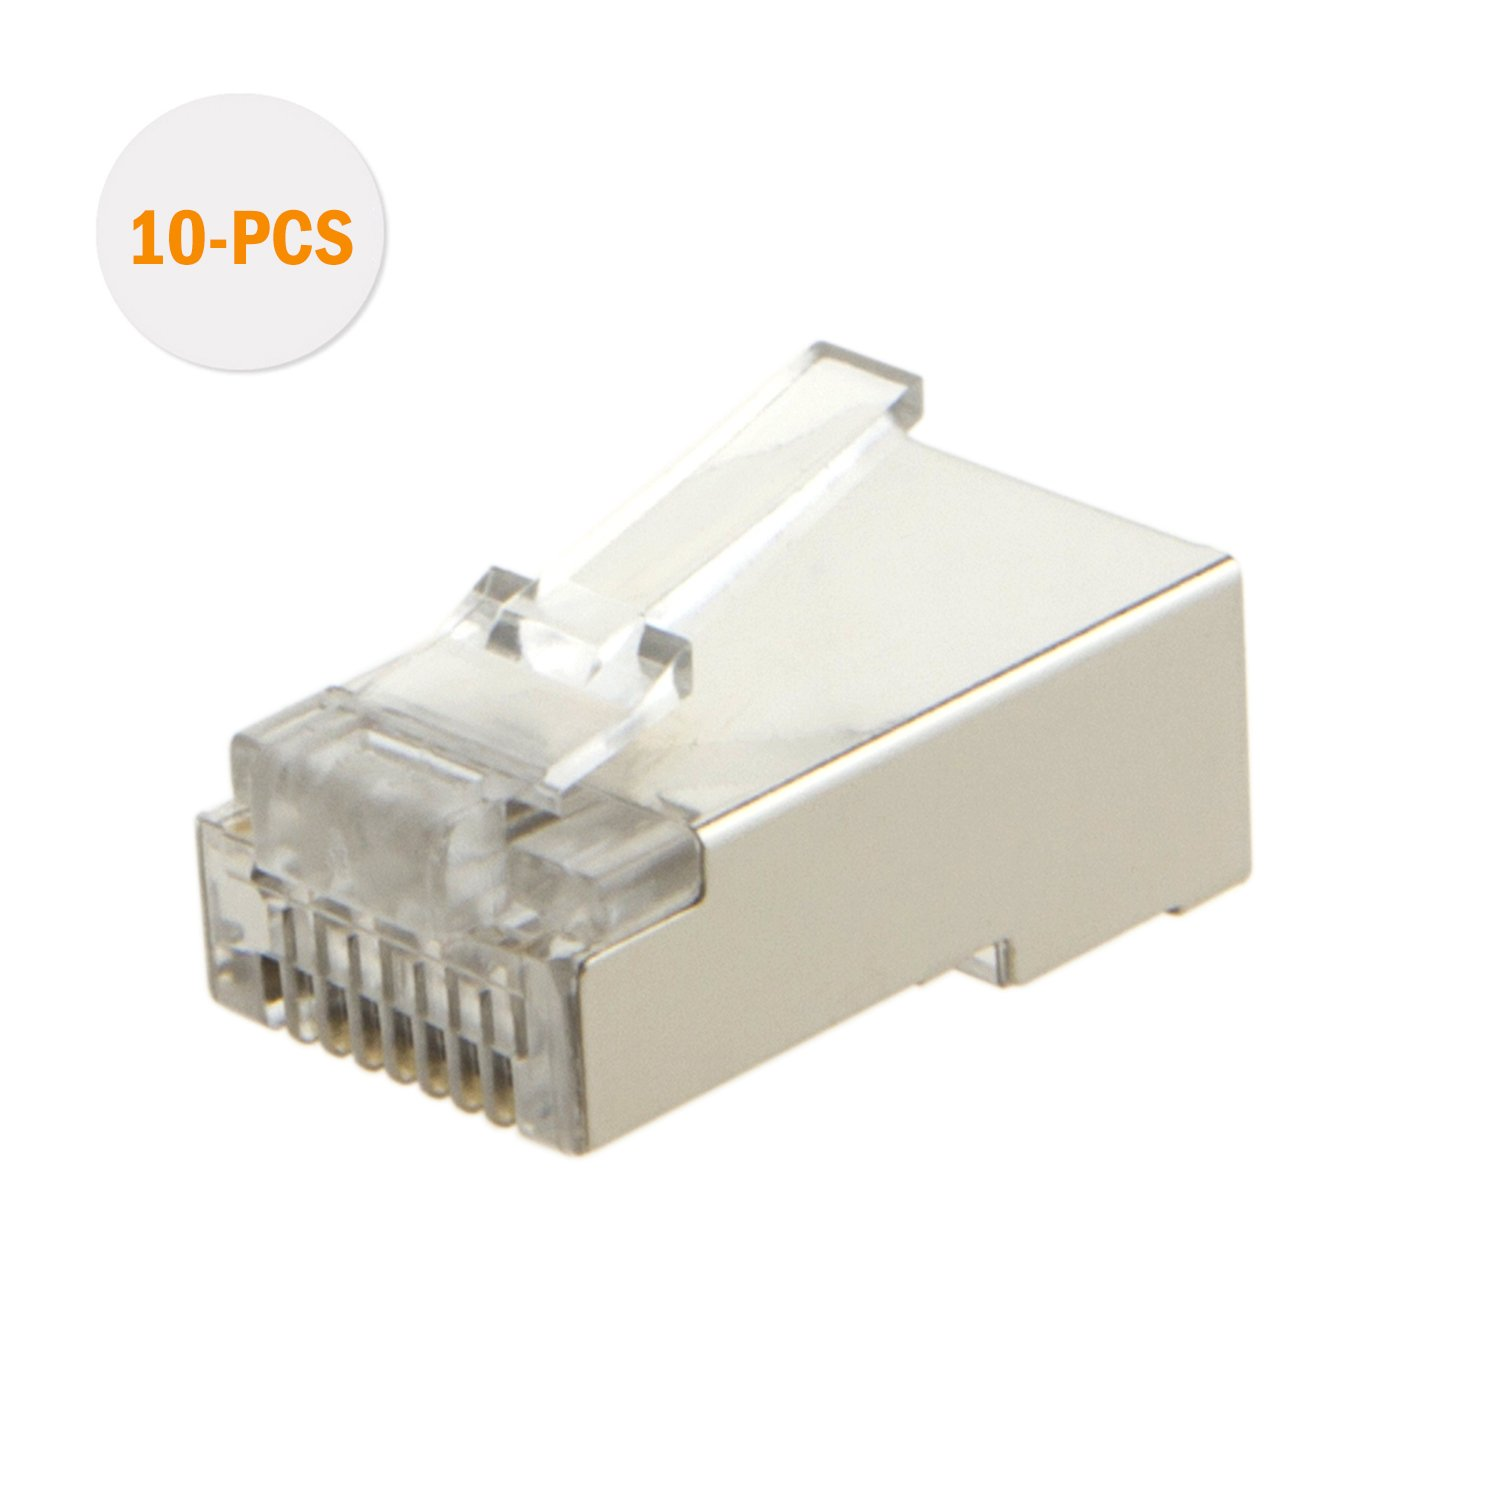 Cablecreation 100 Pack Cat 6 Rj45 Connector Shielded Wiring On Ftp Cat5 Cat5e Solid Cable China Network Plug For Wire And Standard Transparent Computers Accessories